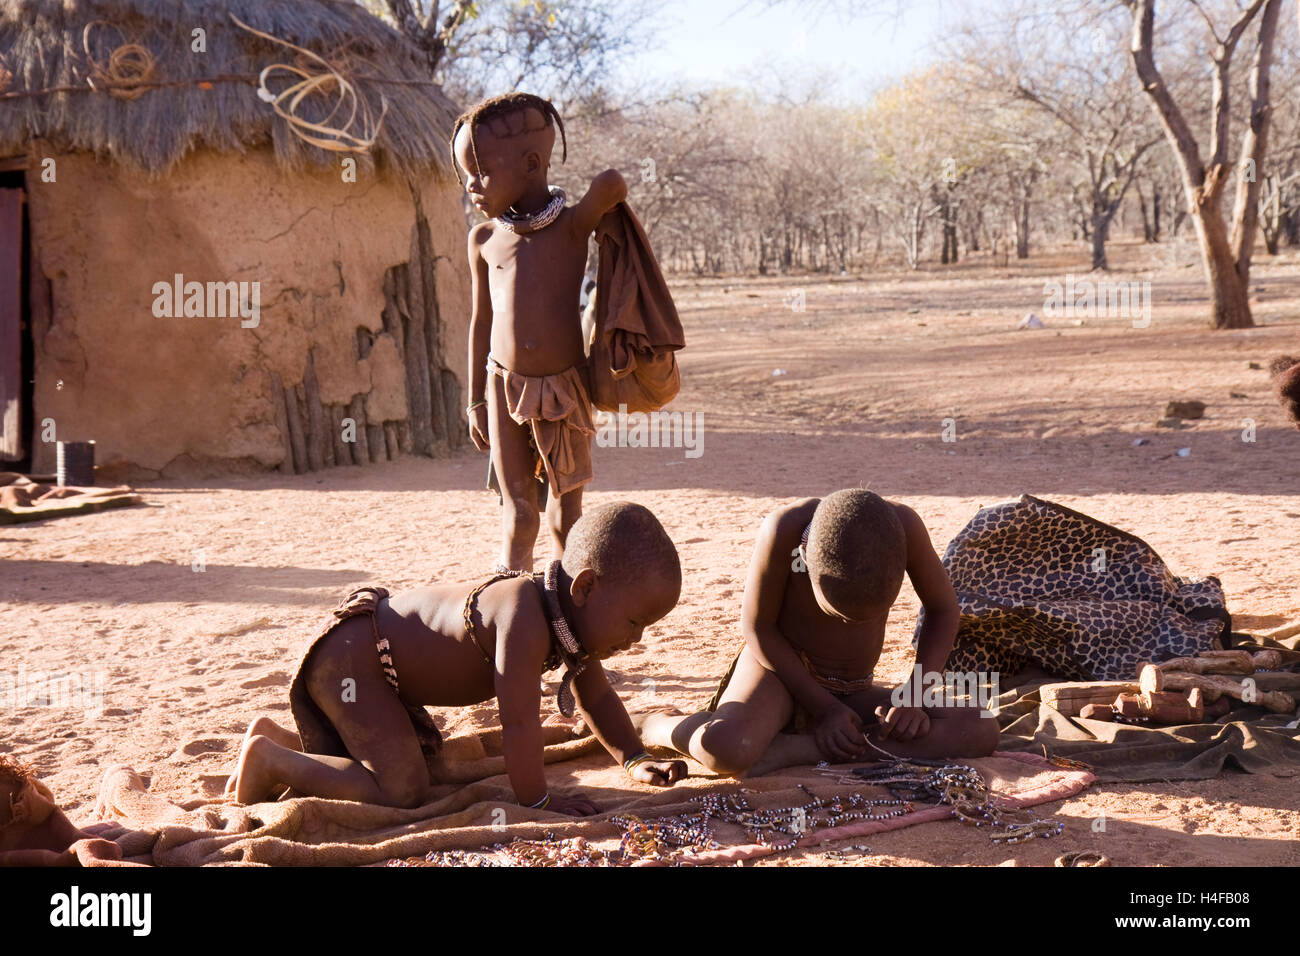 himba women and children in a camp in north of namibia - Stock Image